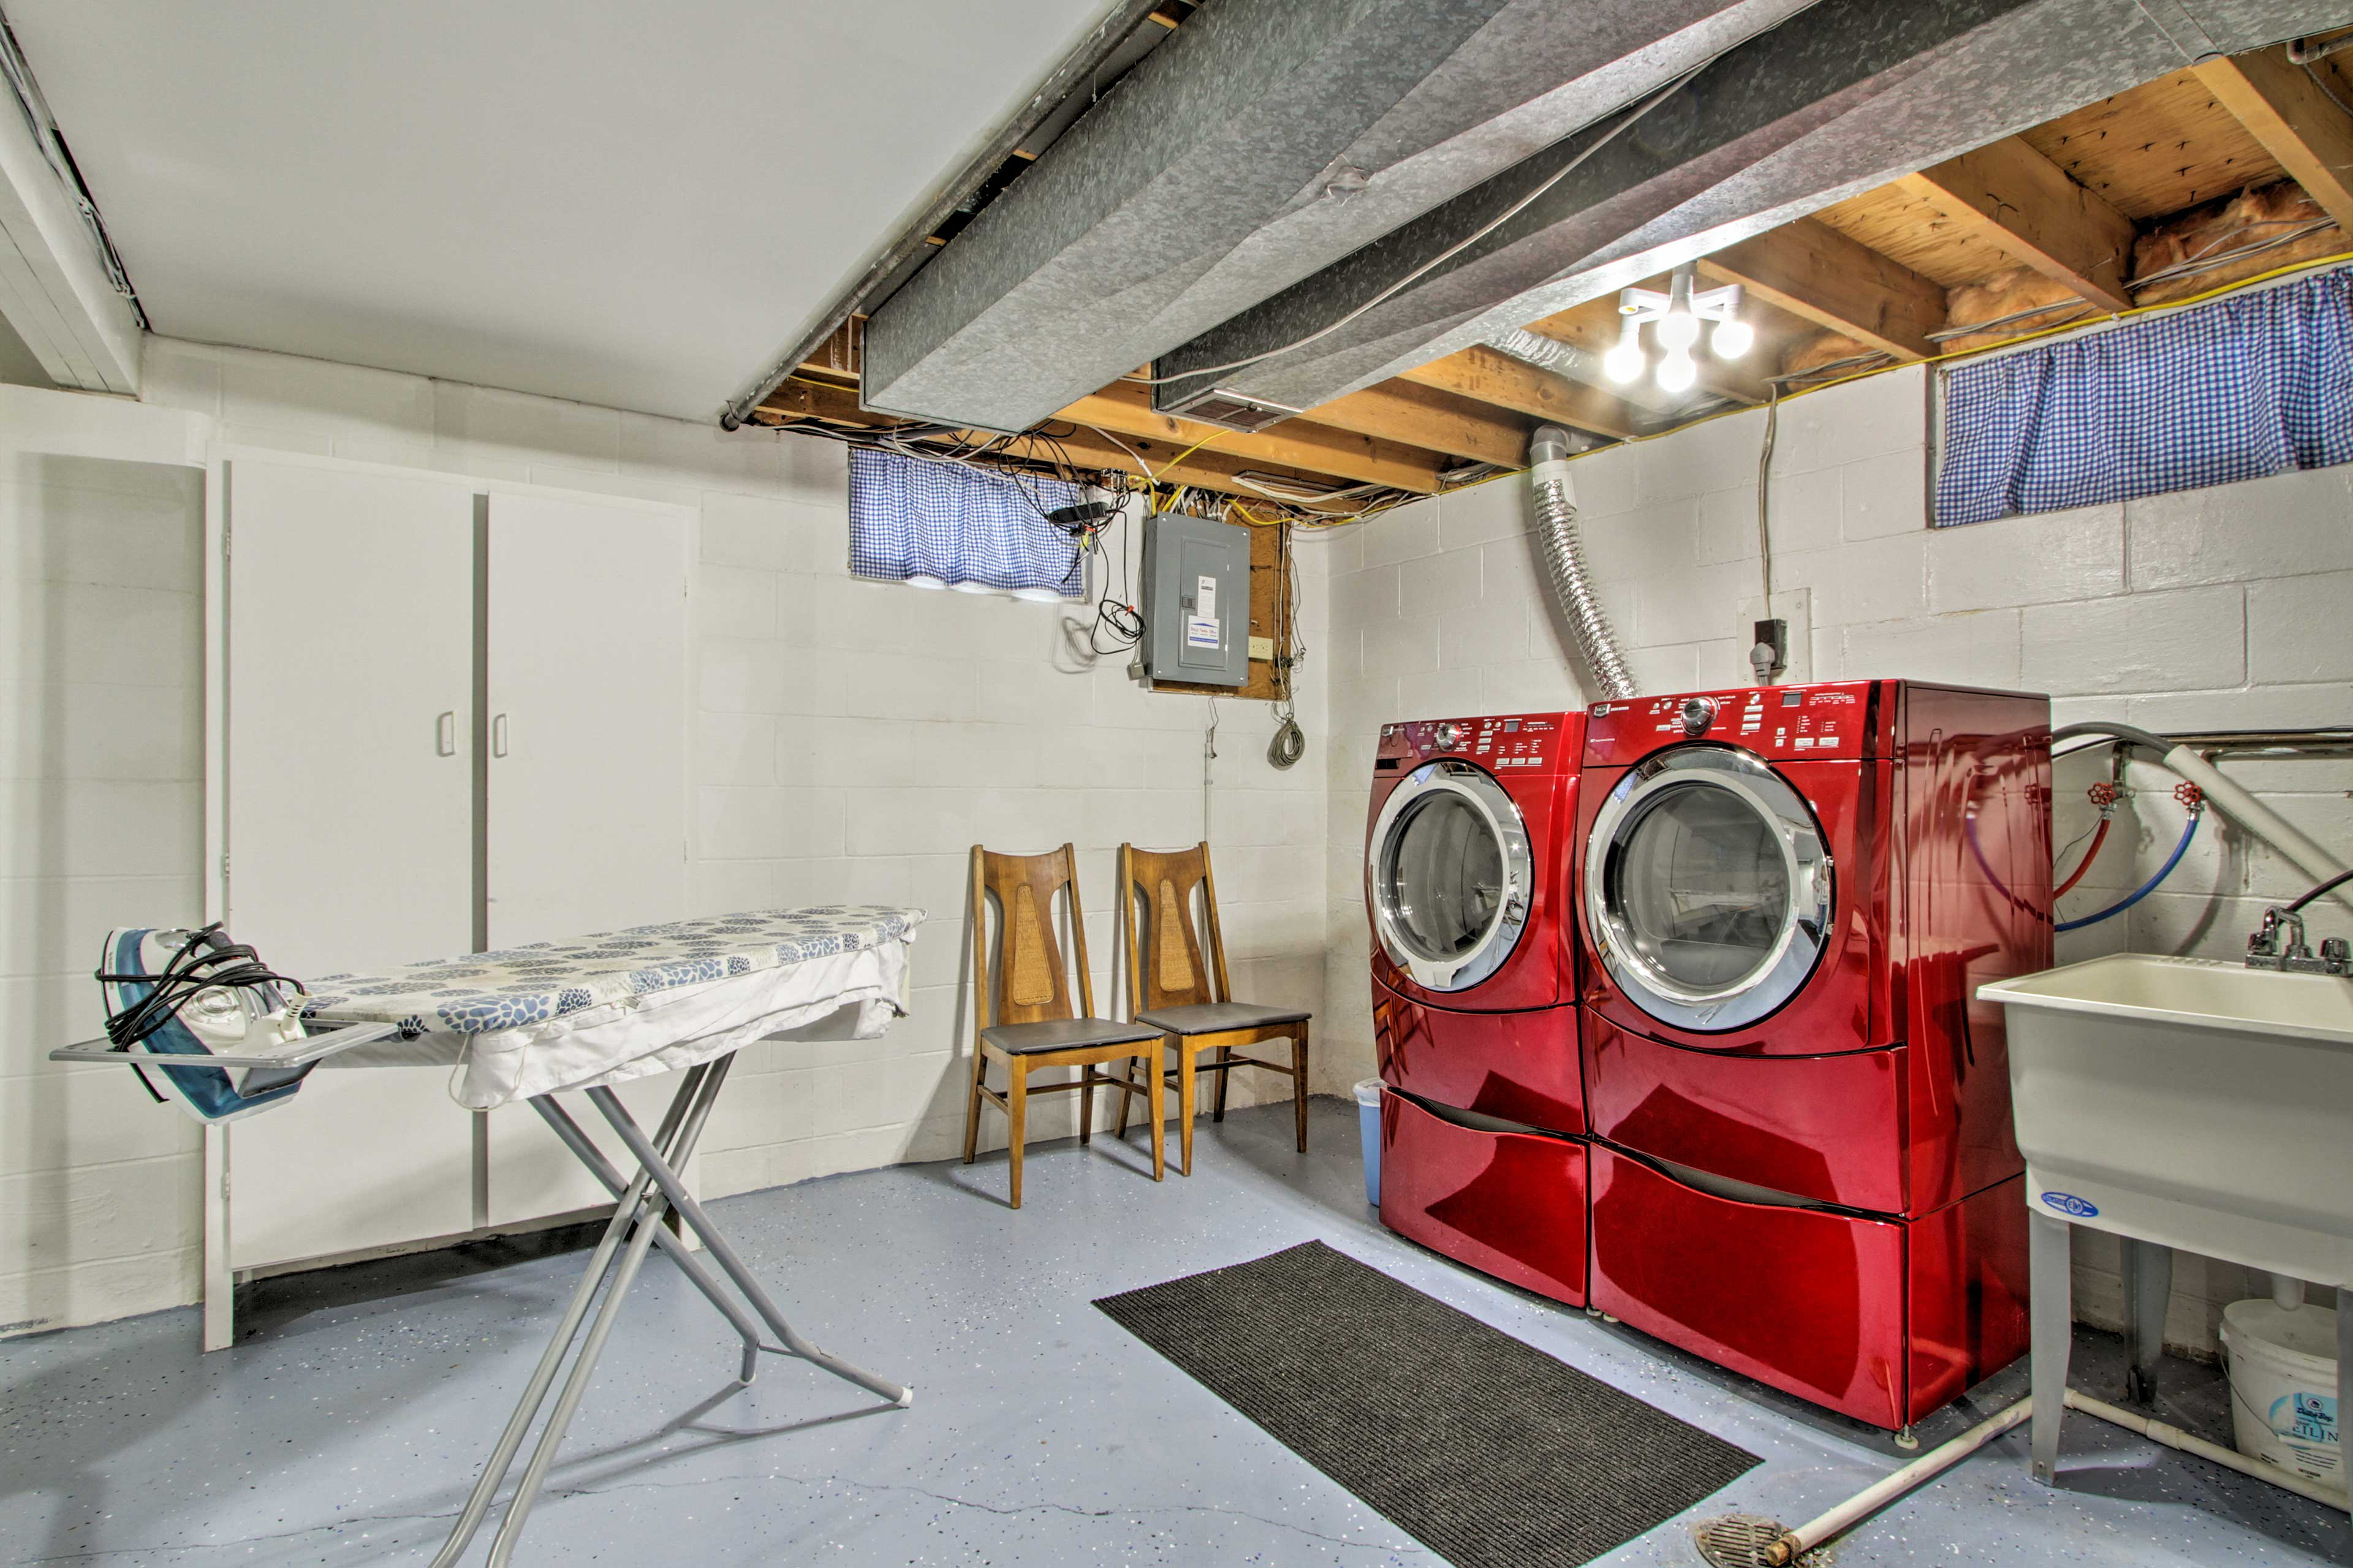 These efficient laundry machines keep your outfits fresh.